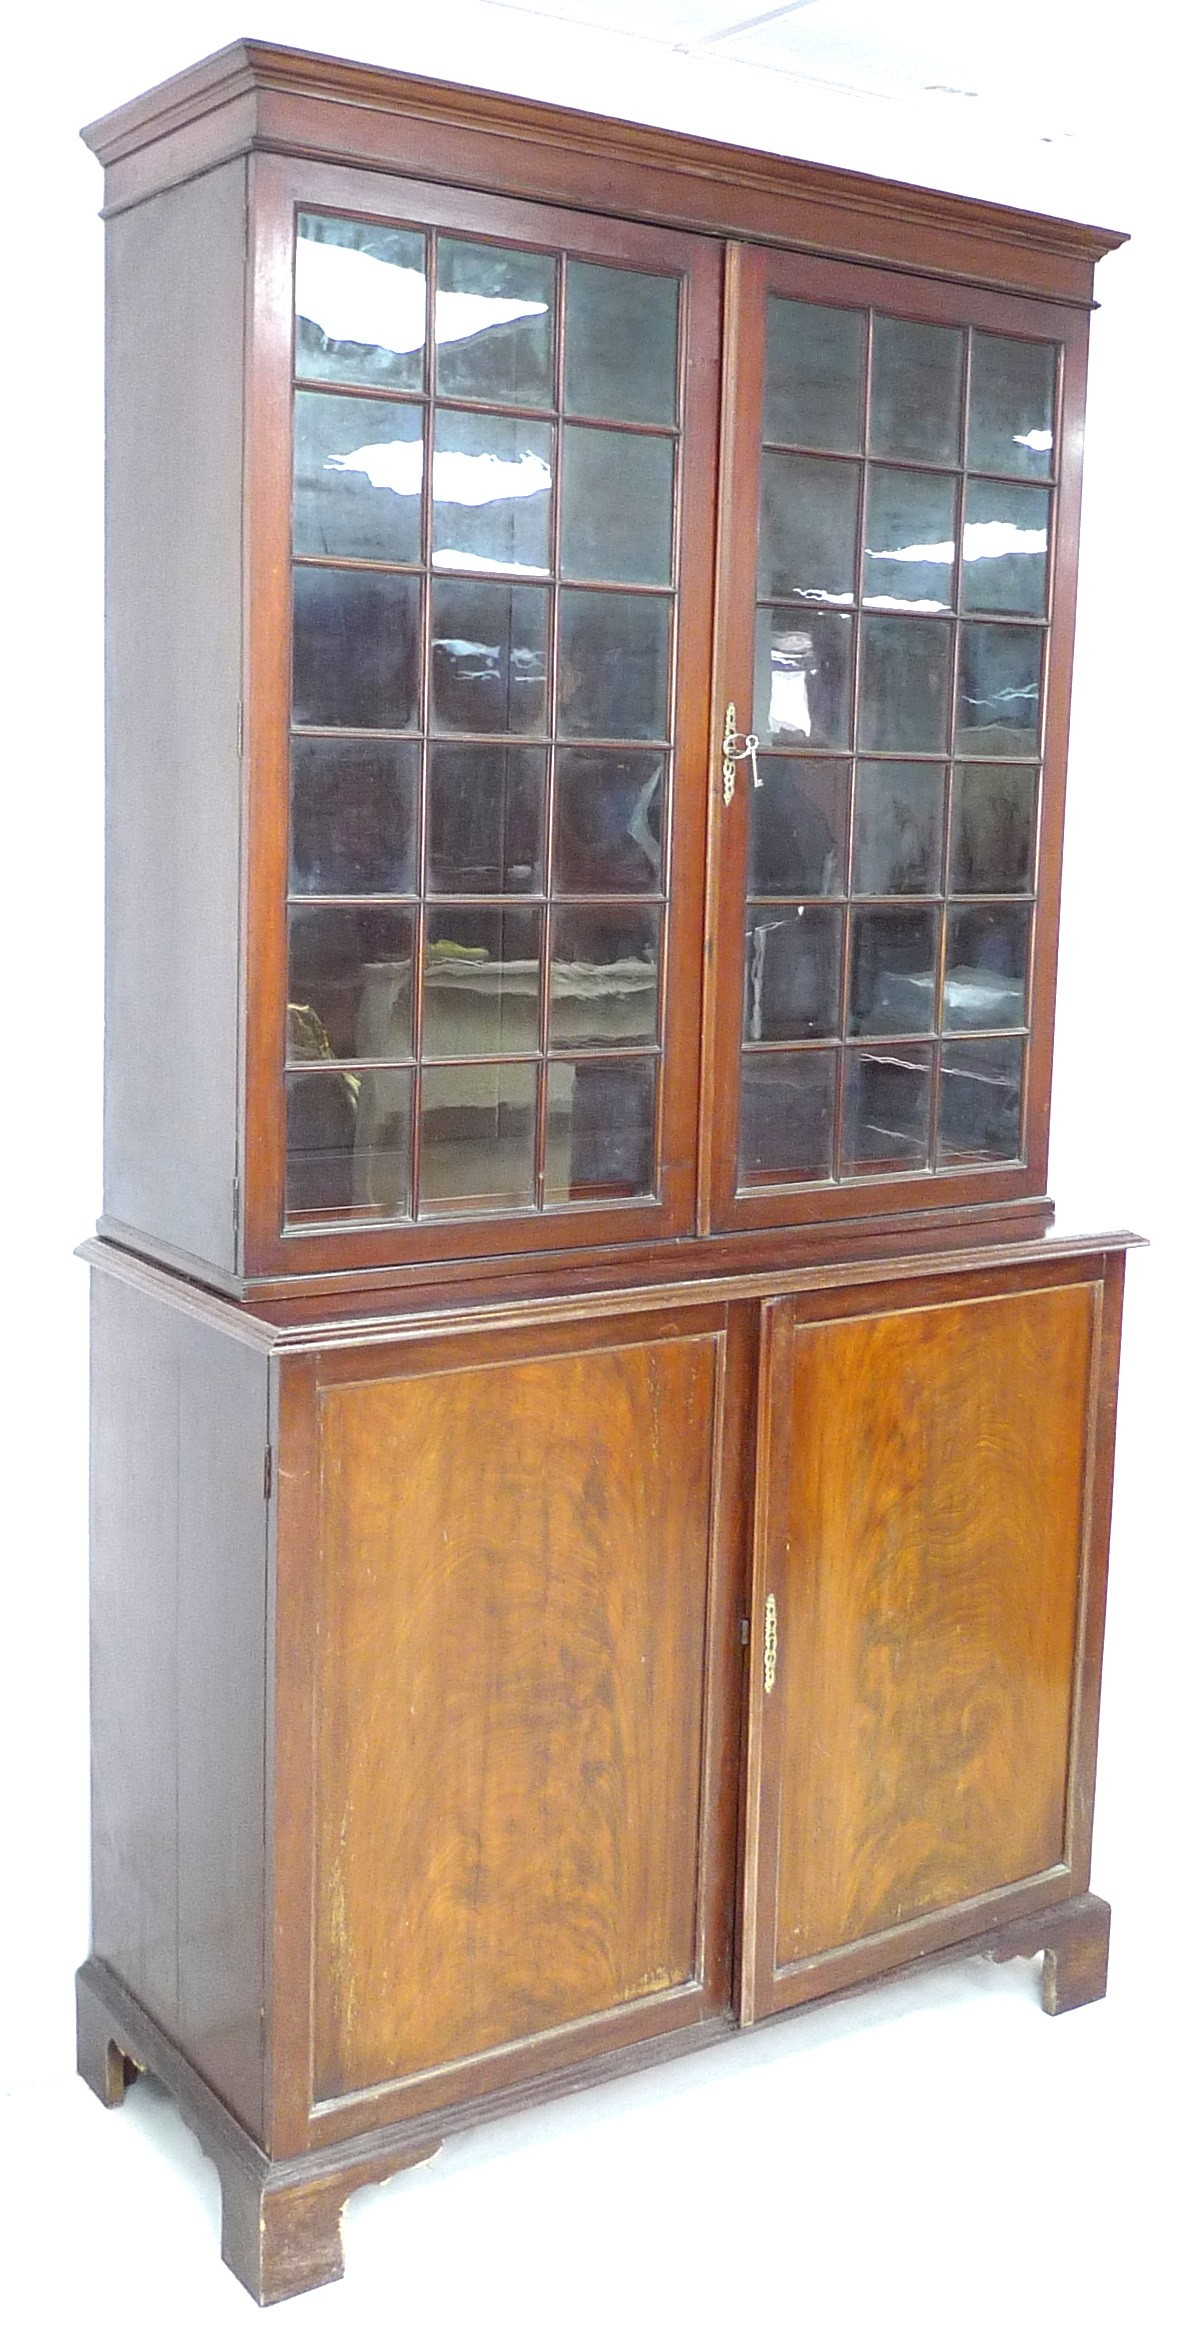 An Edwardian mahogany bookcase, with astragal glazed double doors, above a cupboard base, raised - Image 3 of 3